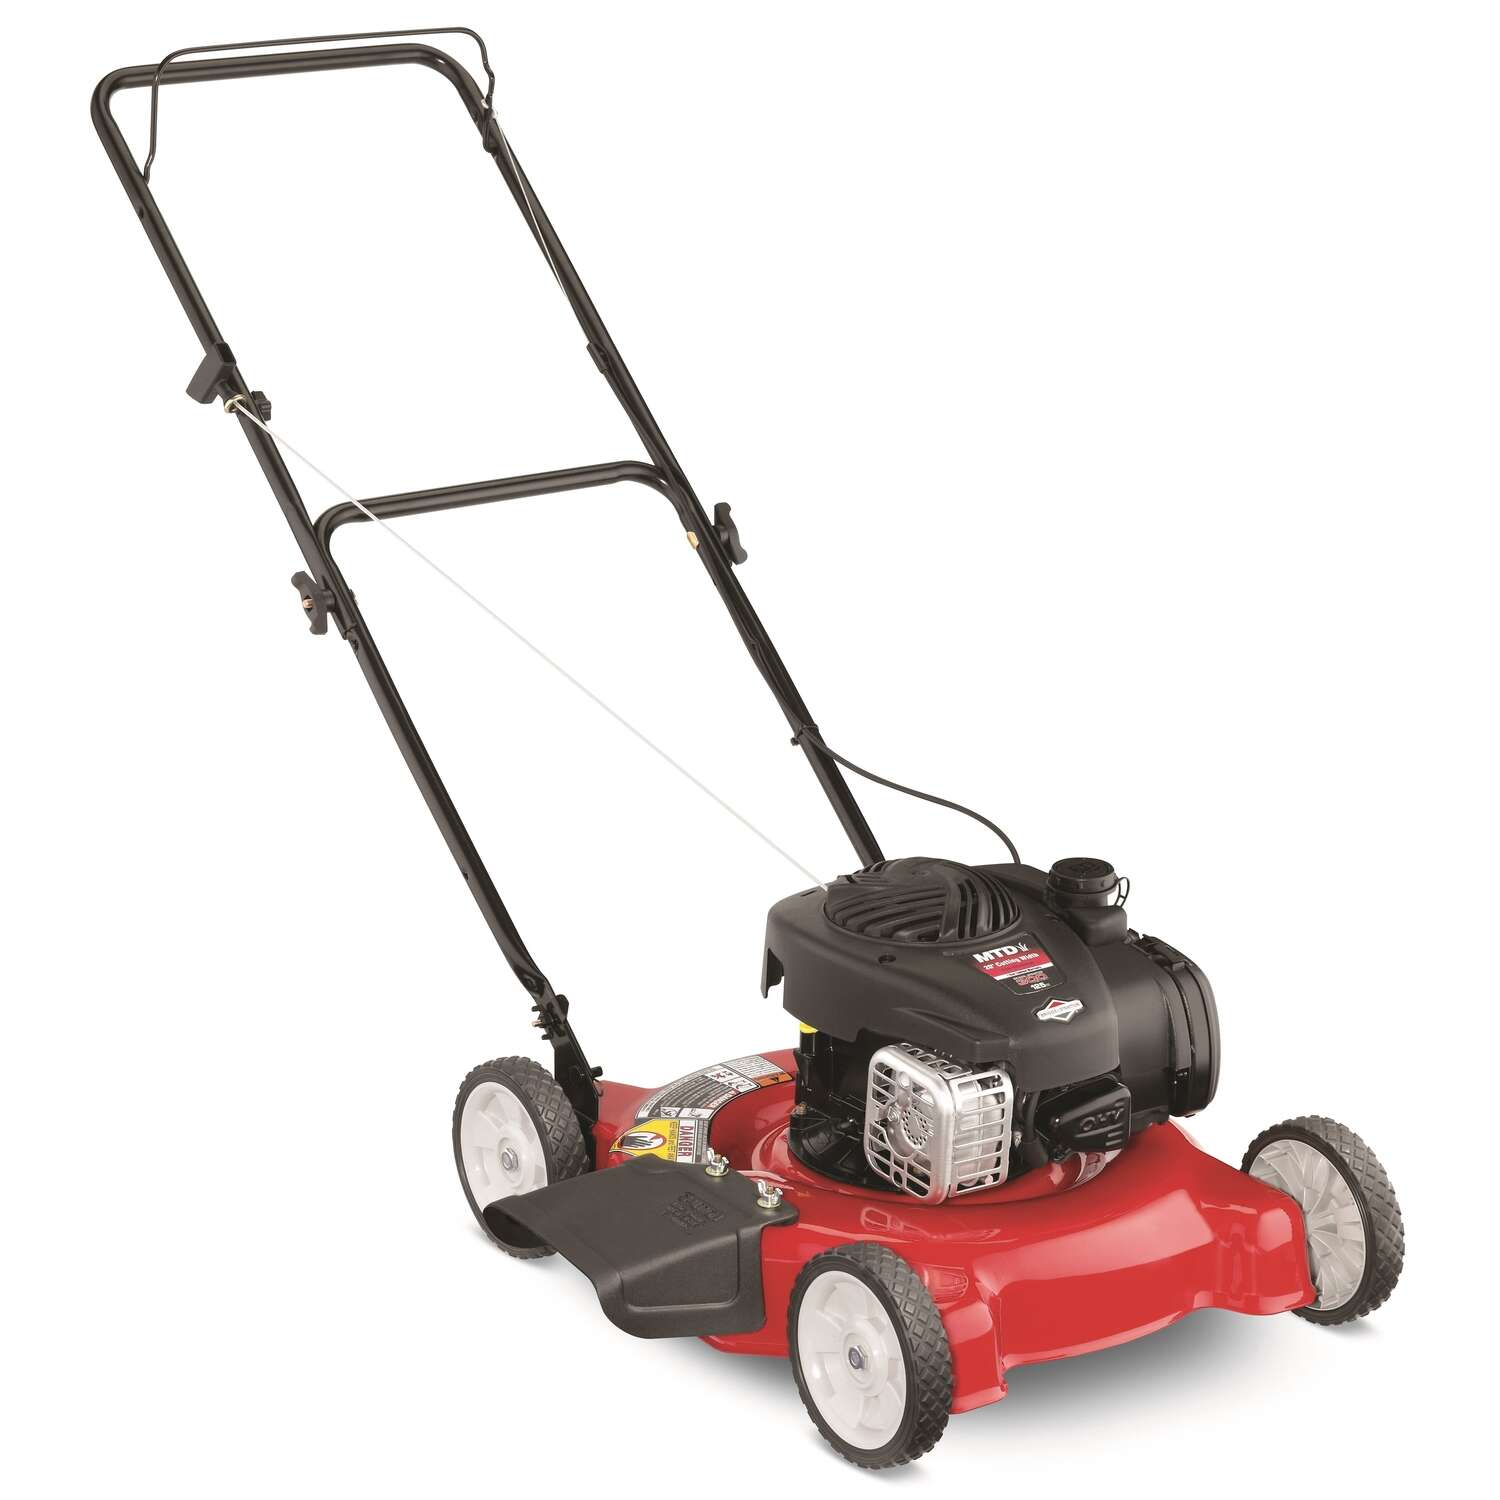 Yard Machines  11A-02BT729  20 in. 125 cc Gas  Push Mower